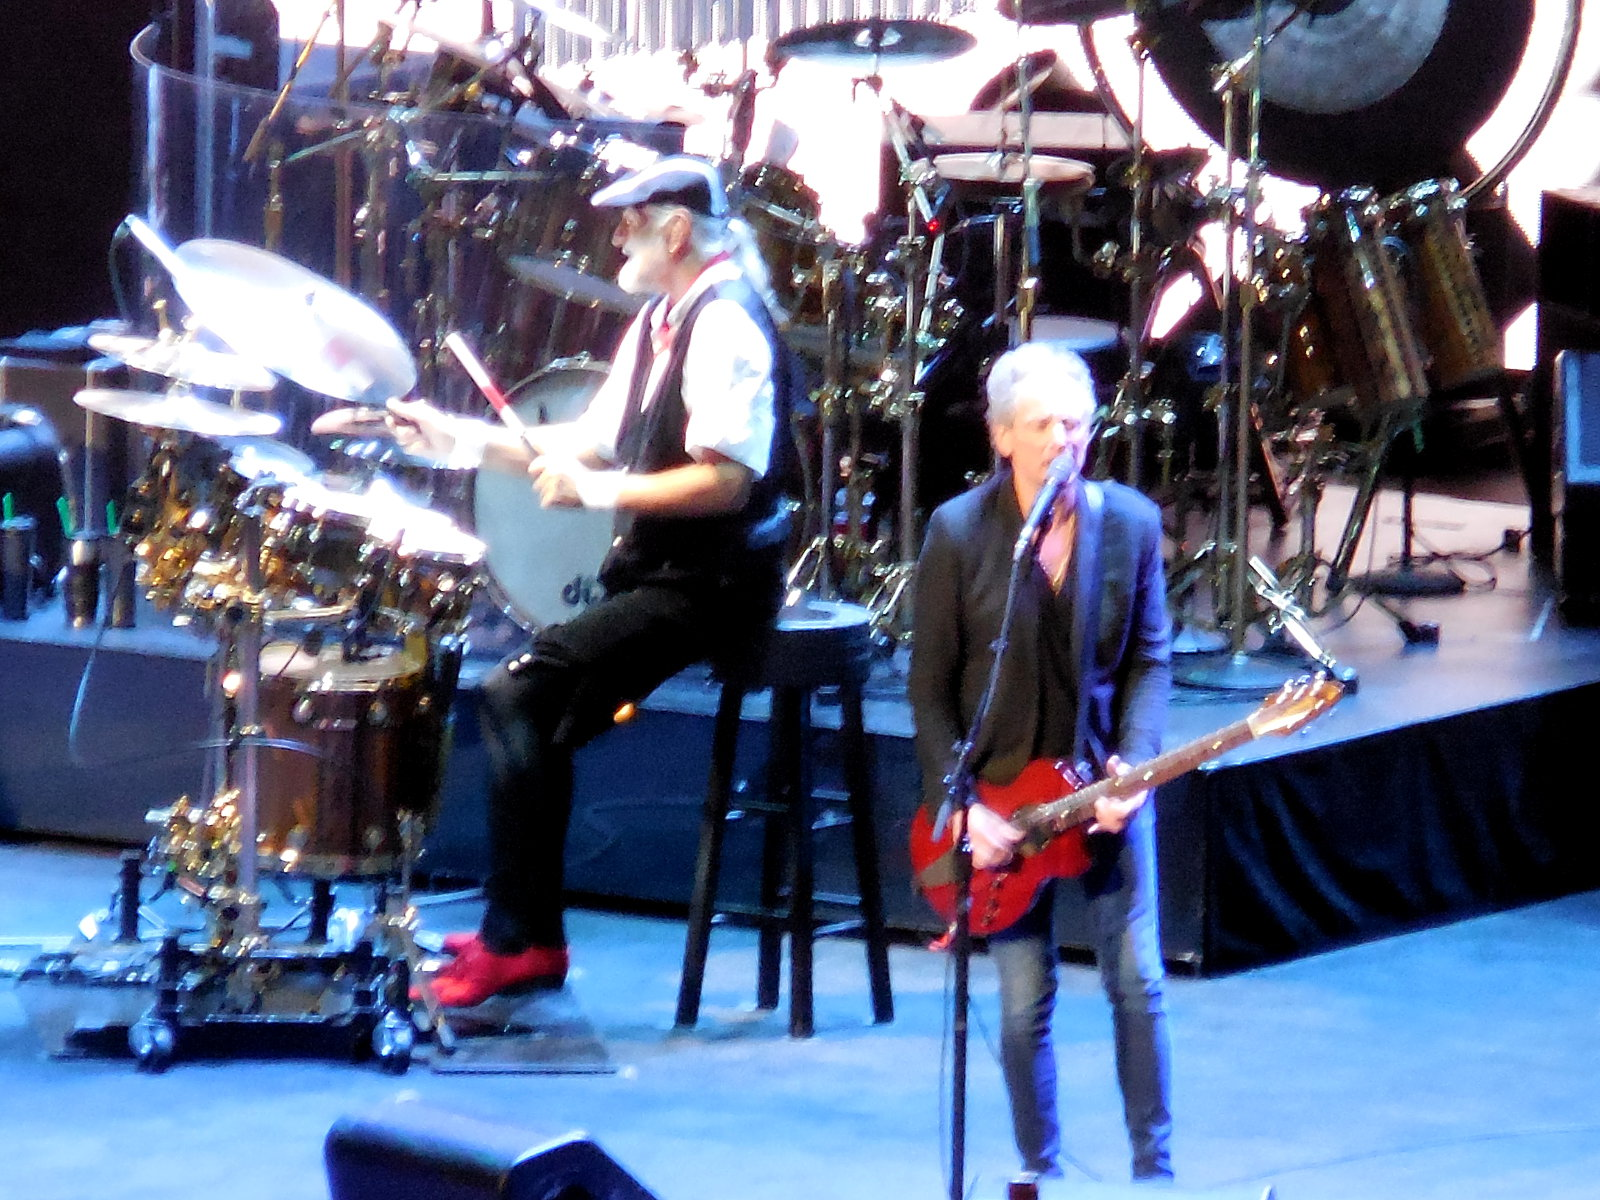 Mick Fleetwood and Lindsey Buckinham at Verizon Center Jan 2015 ©K. R. Smith 2015